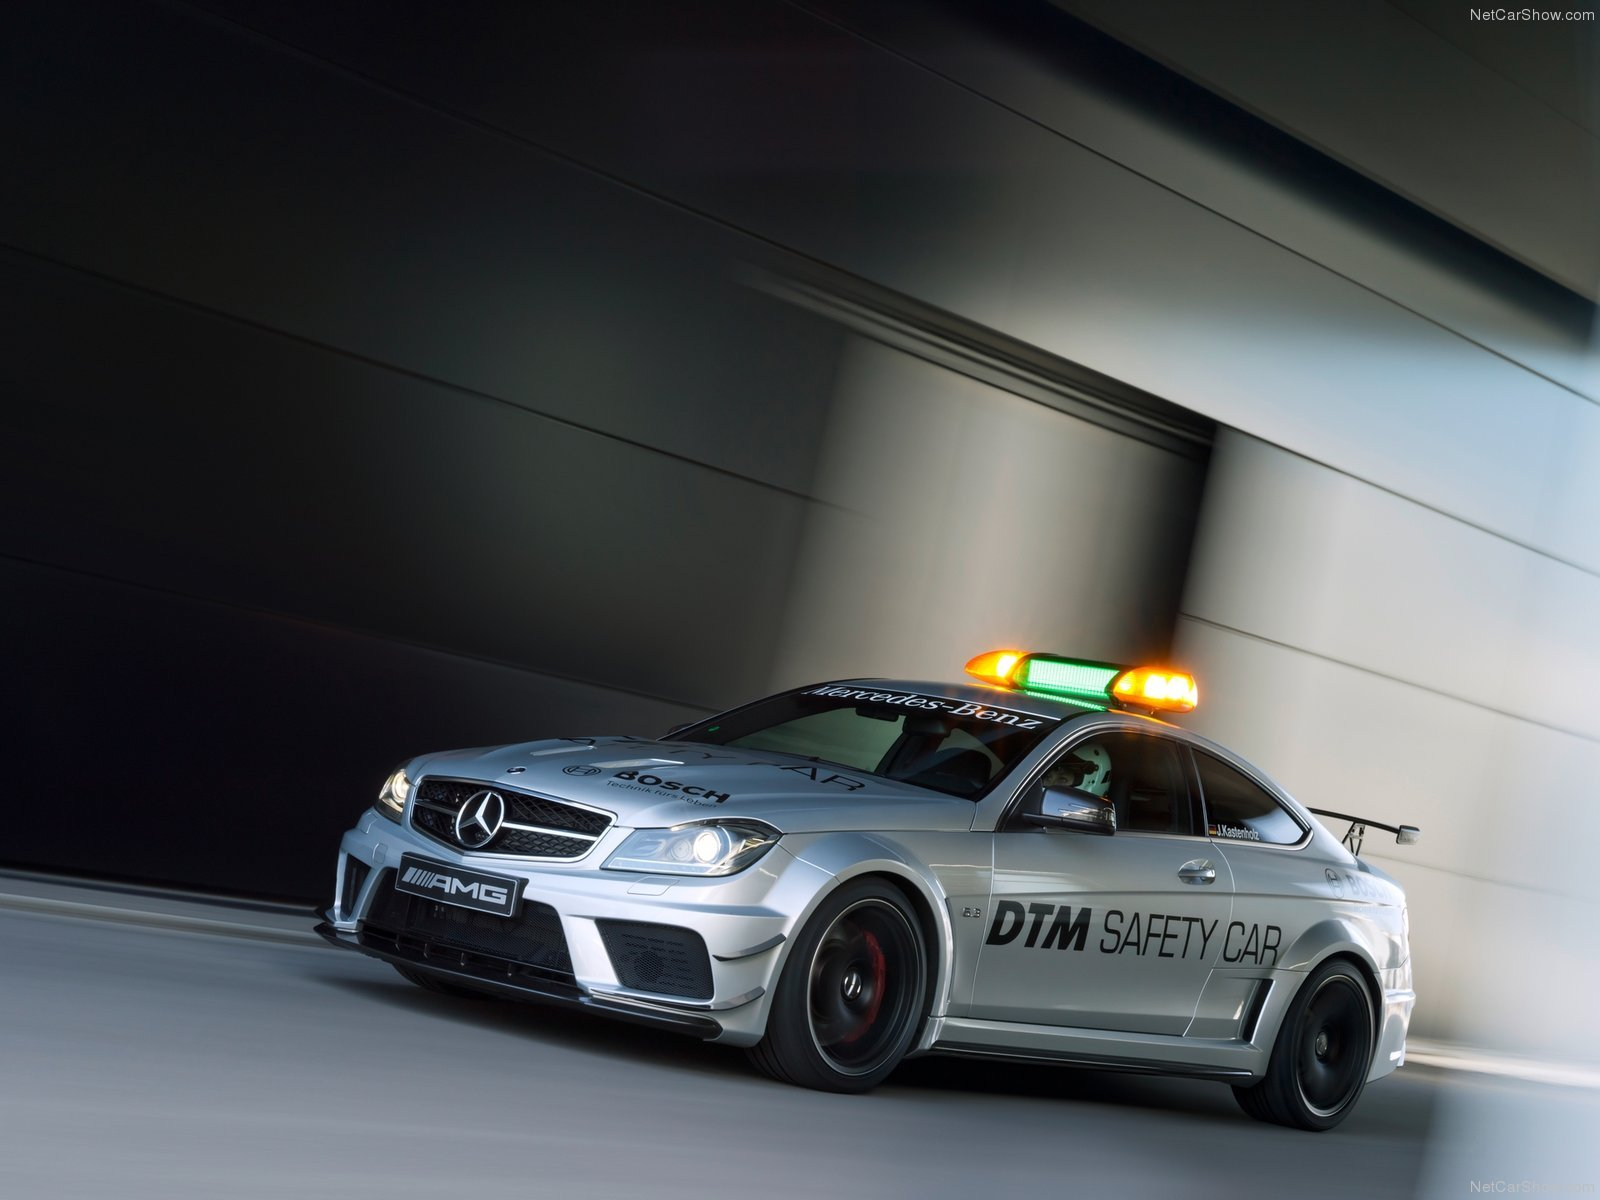 2019 mercedes benz c63 amg dtm safety car